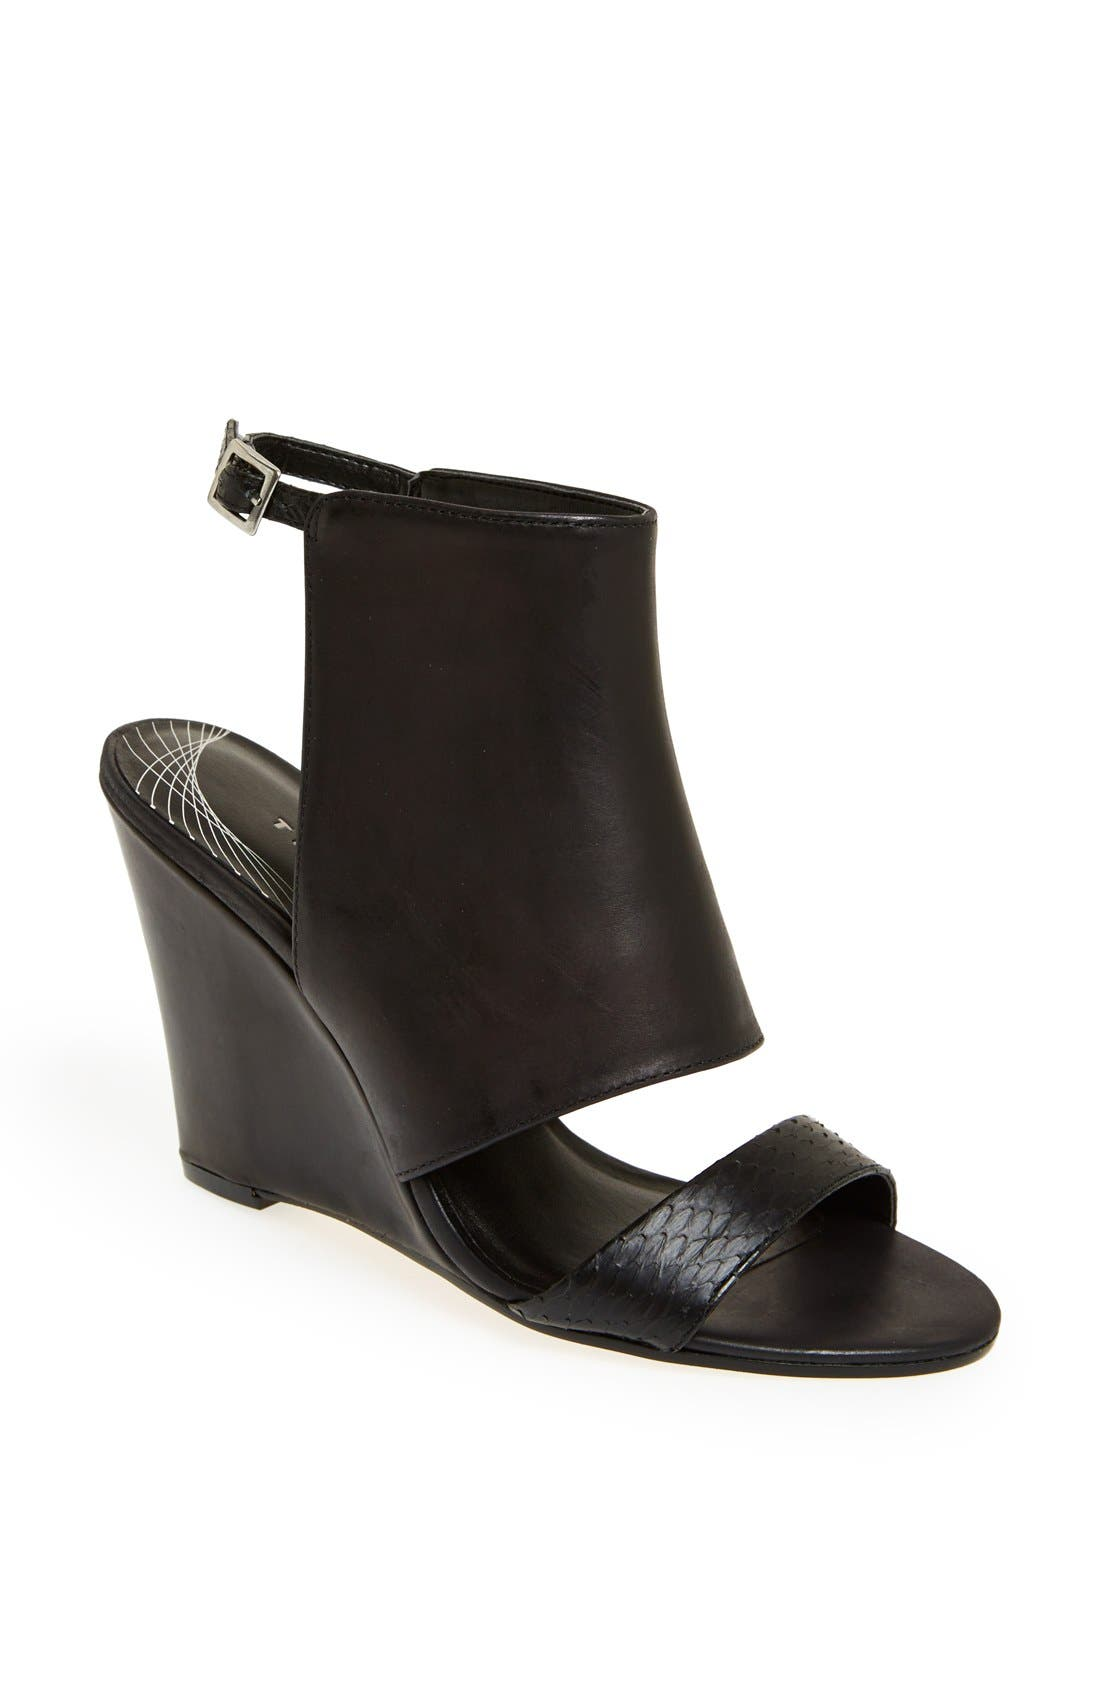 Main Image - Trouvé 'Raley' Cuff Wedge Sandal